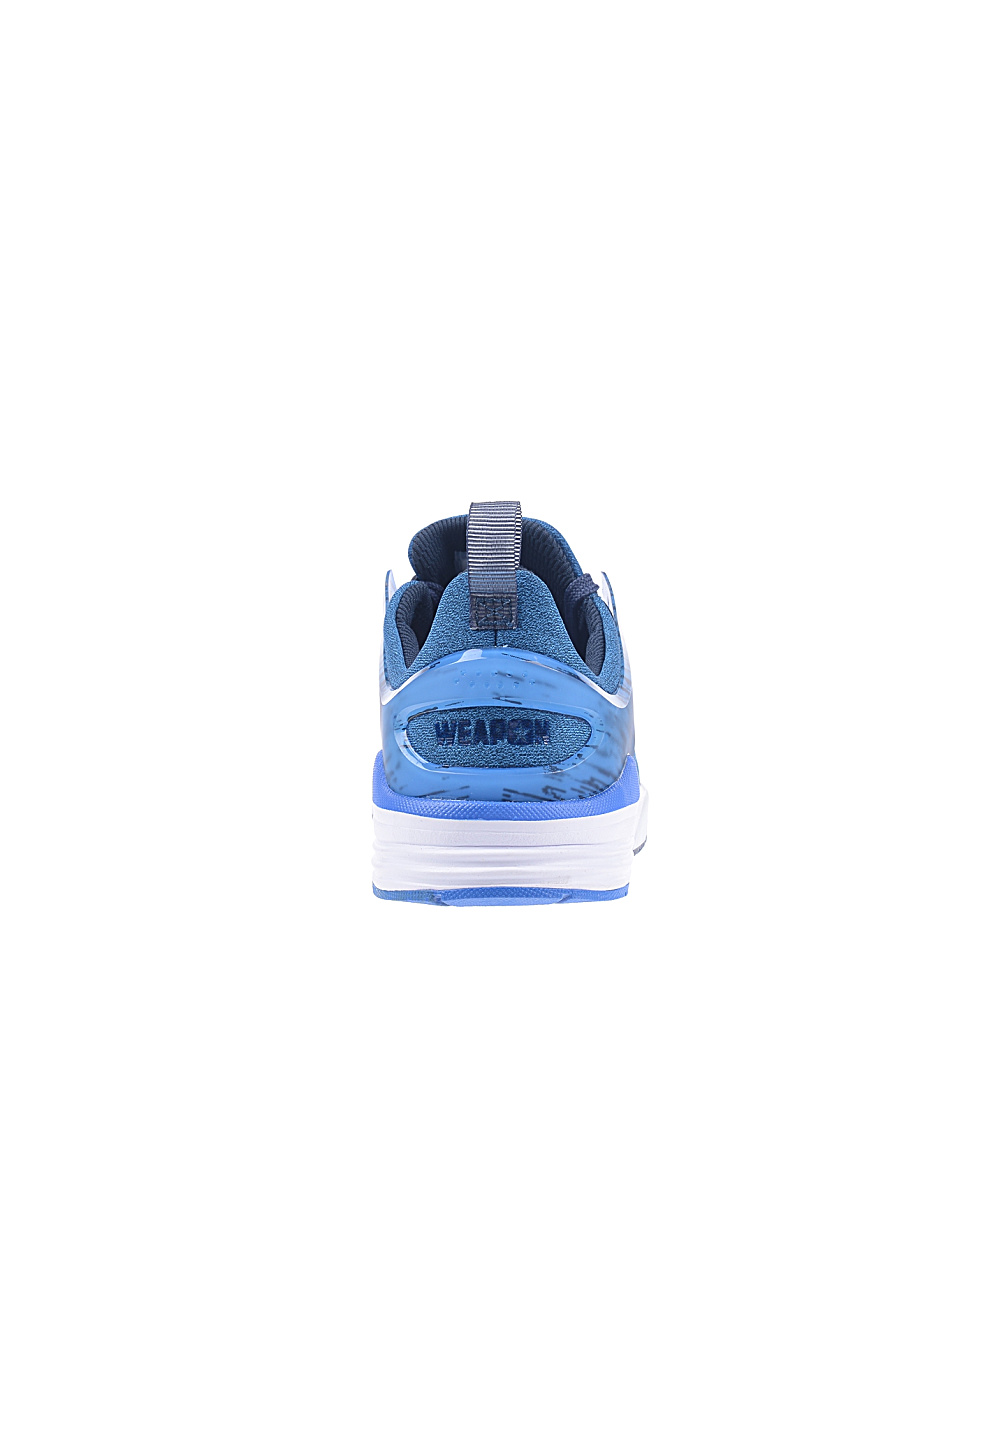 5f1bbe1efcfd5f Converse Chuck Taylor All Star Weapon 2.0 Ox - Sneakers for Men ...